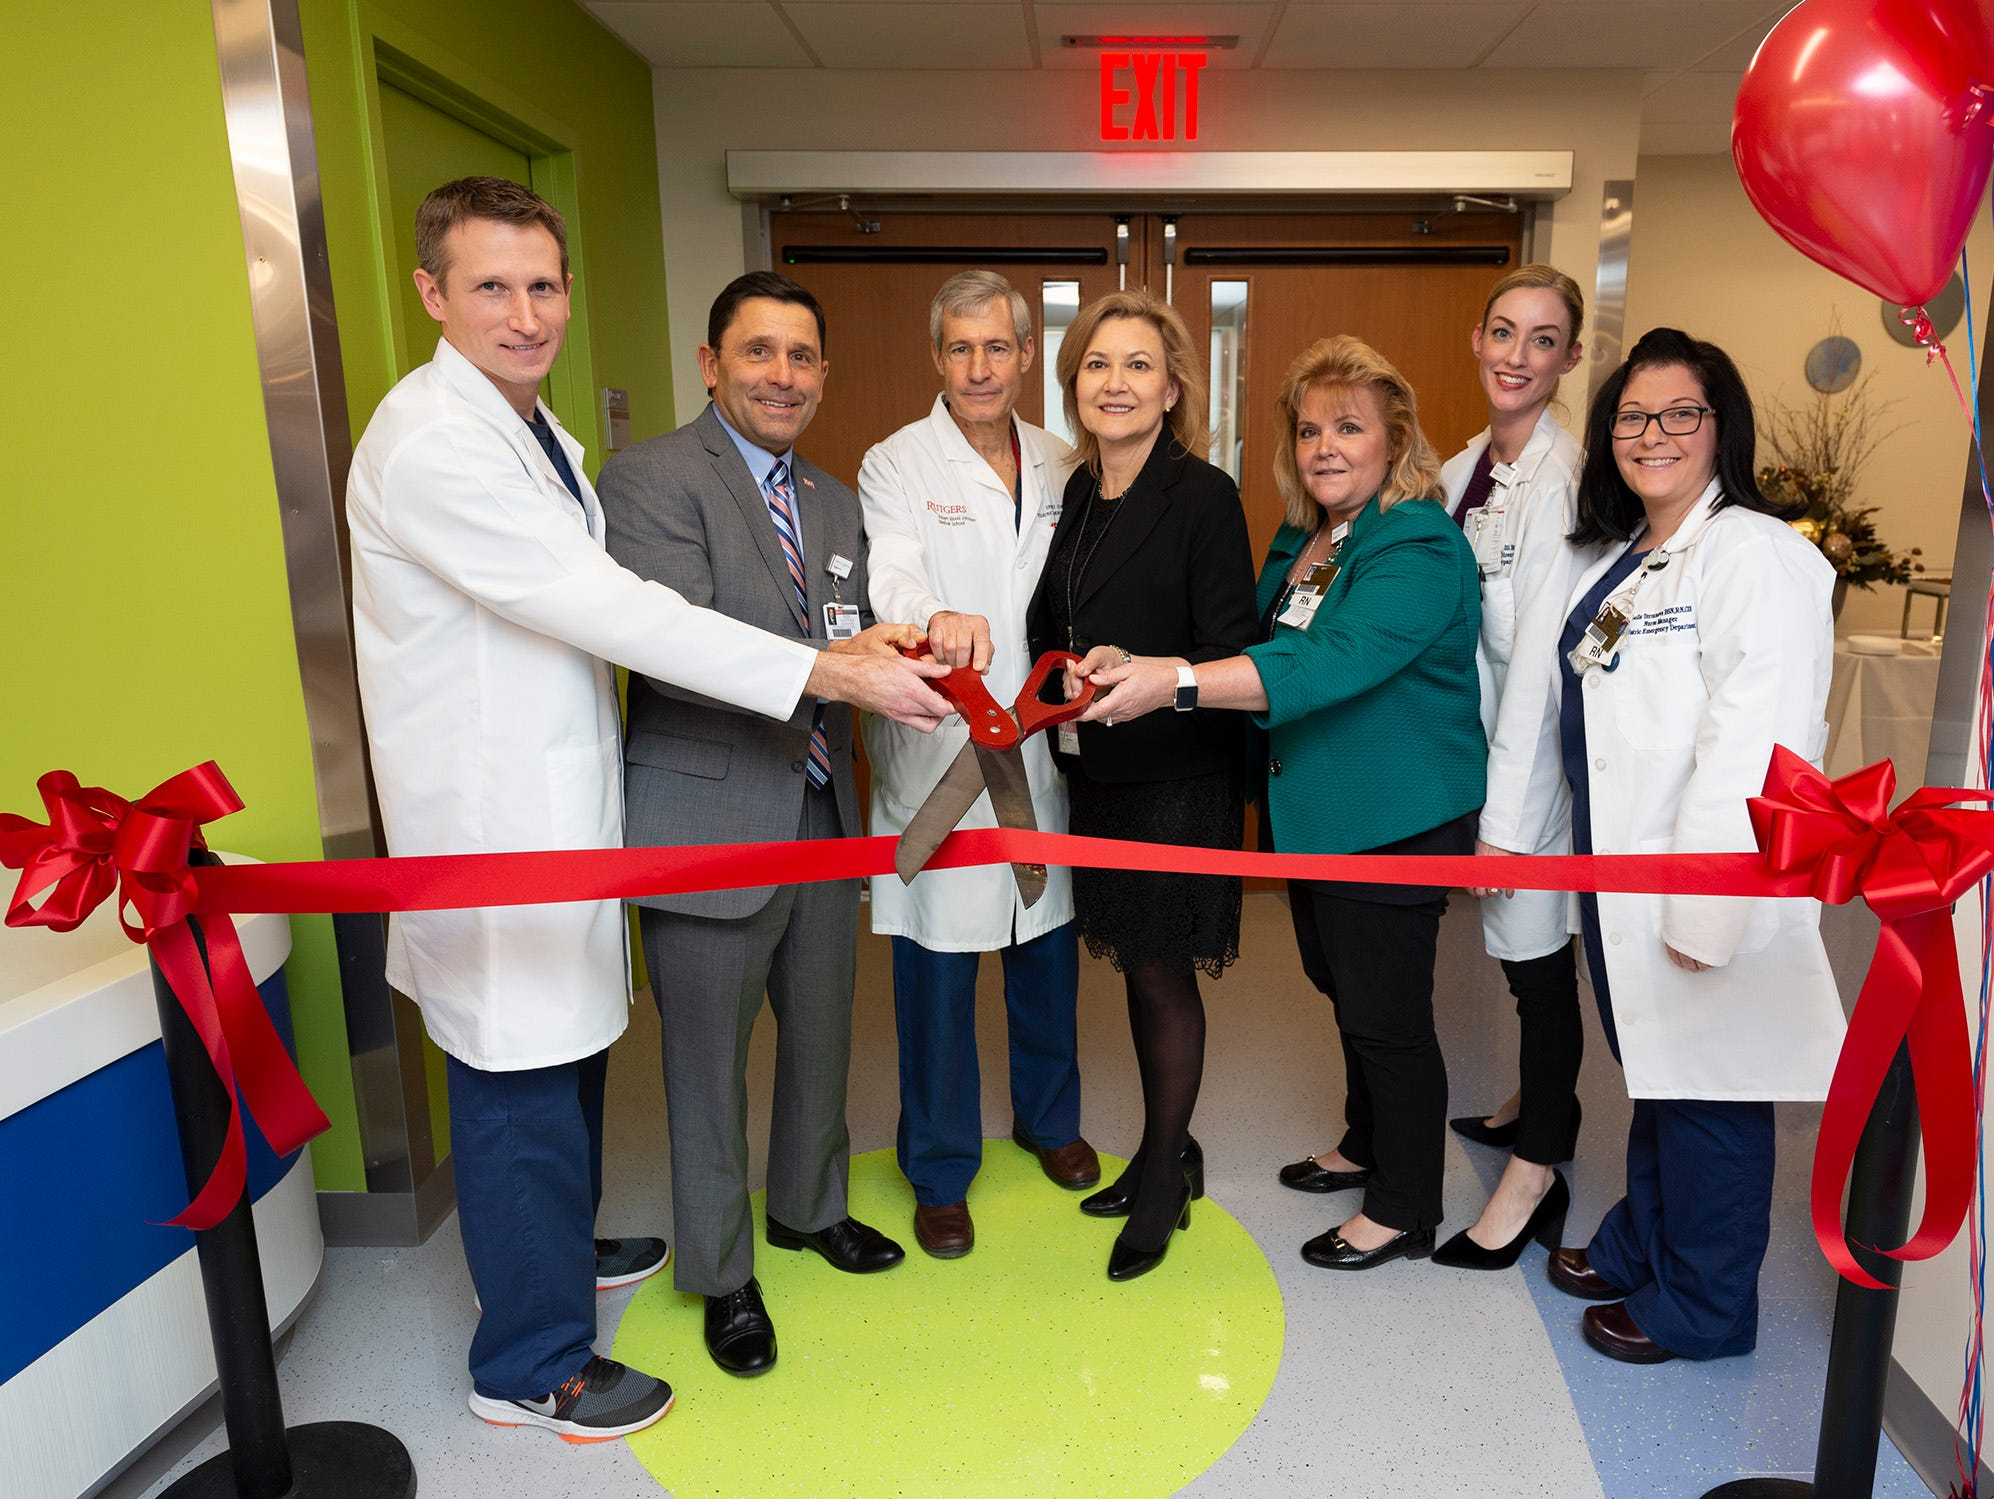 Ready for the youngest patients, the new 24-hour Pediatric Emergency Department at Robert Wood Johnson University Hospital New Brunswick, an RWJBarnabas Health facility, opened its doors at 7 a.m Tuesday.